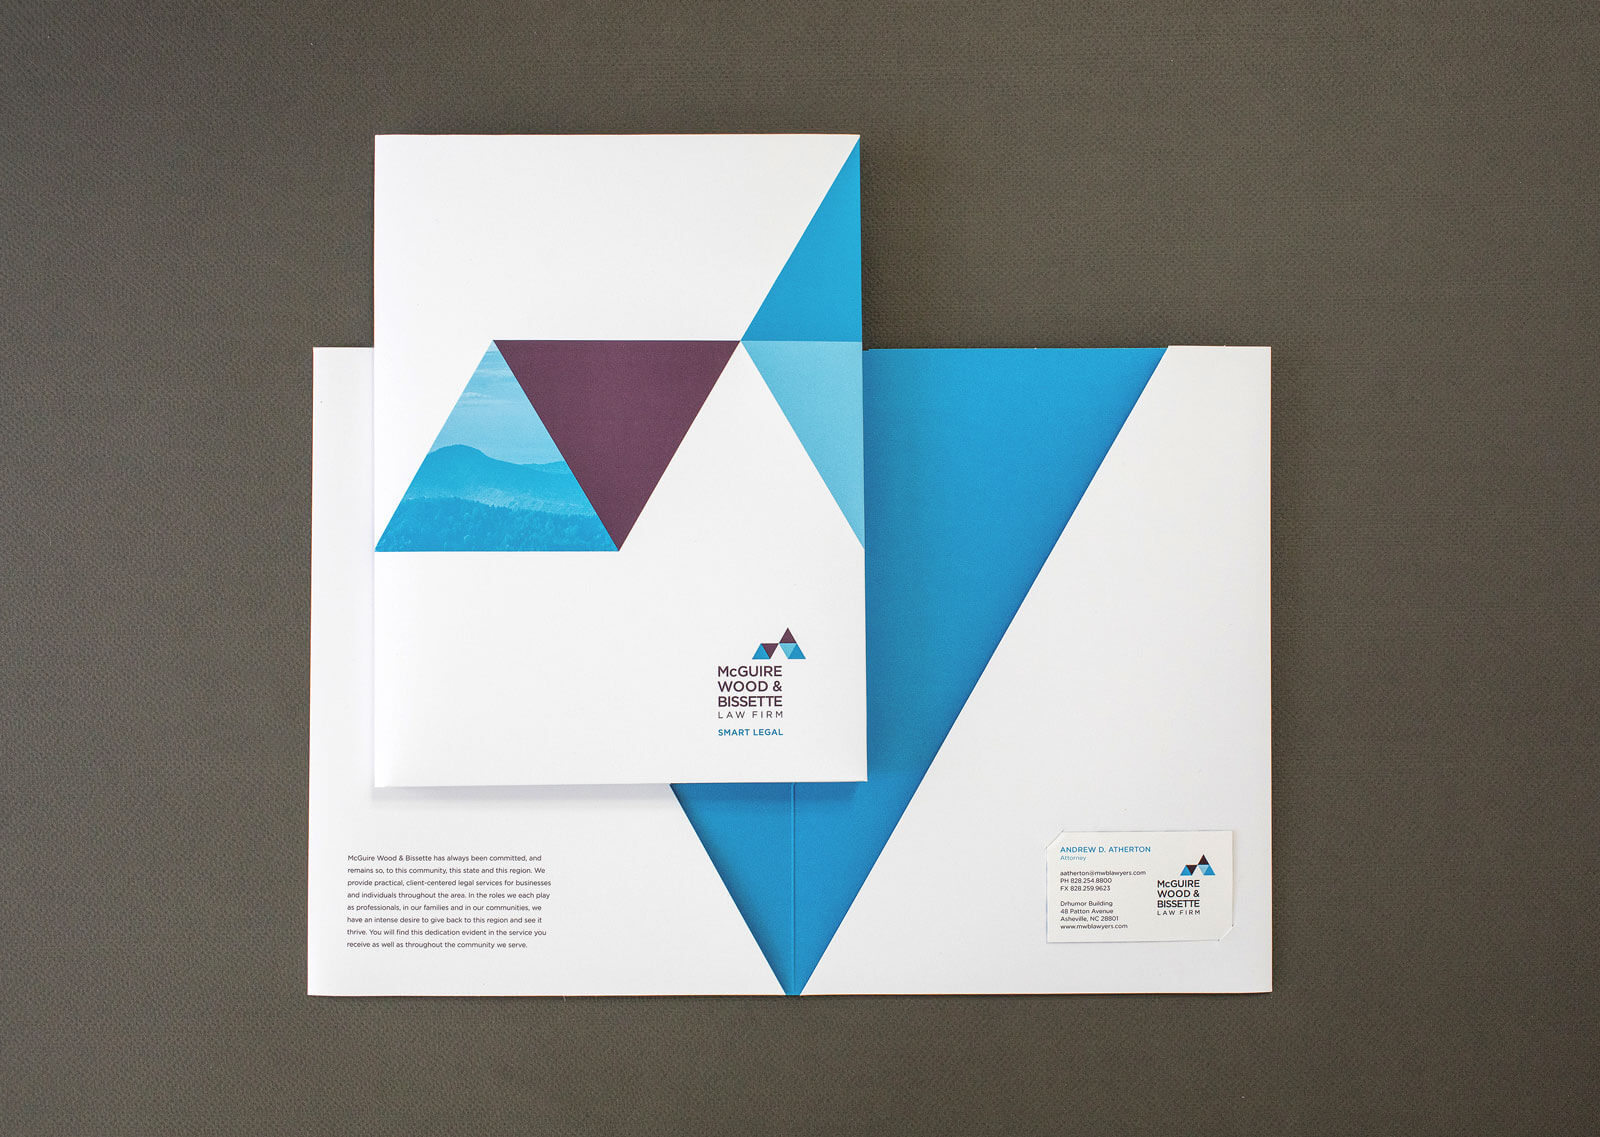 McGuire Wood & Bissette Law Firm folder cover, and opened with blue interior and letterhead and business card inserted, on a gray background.